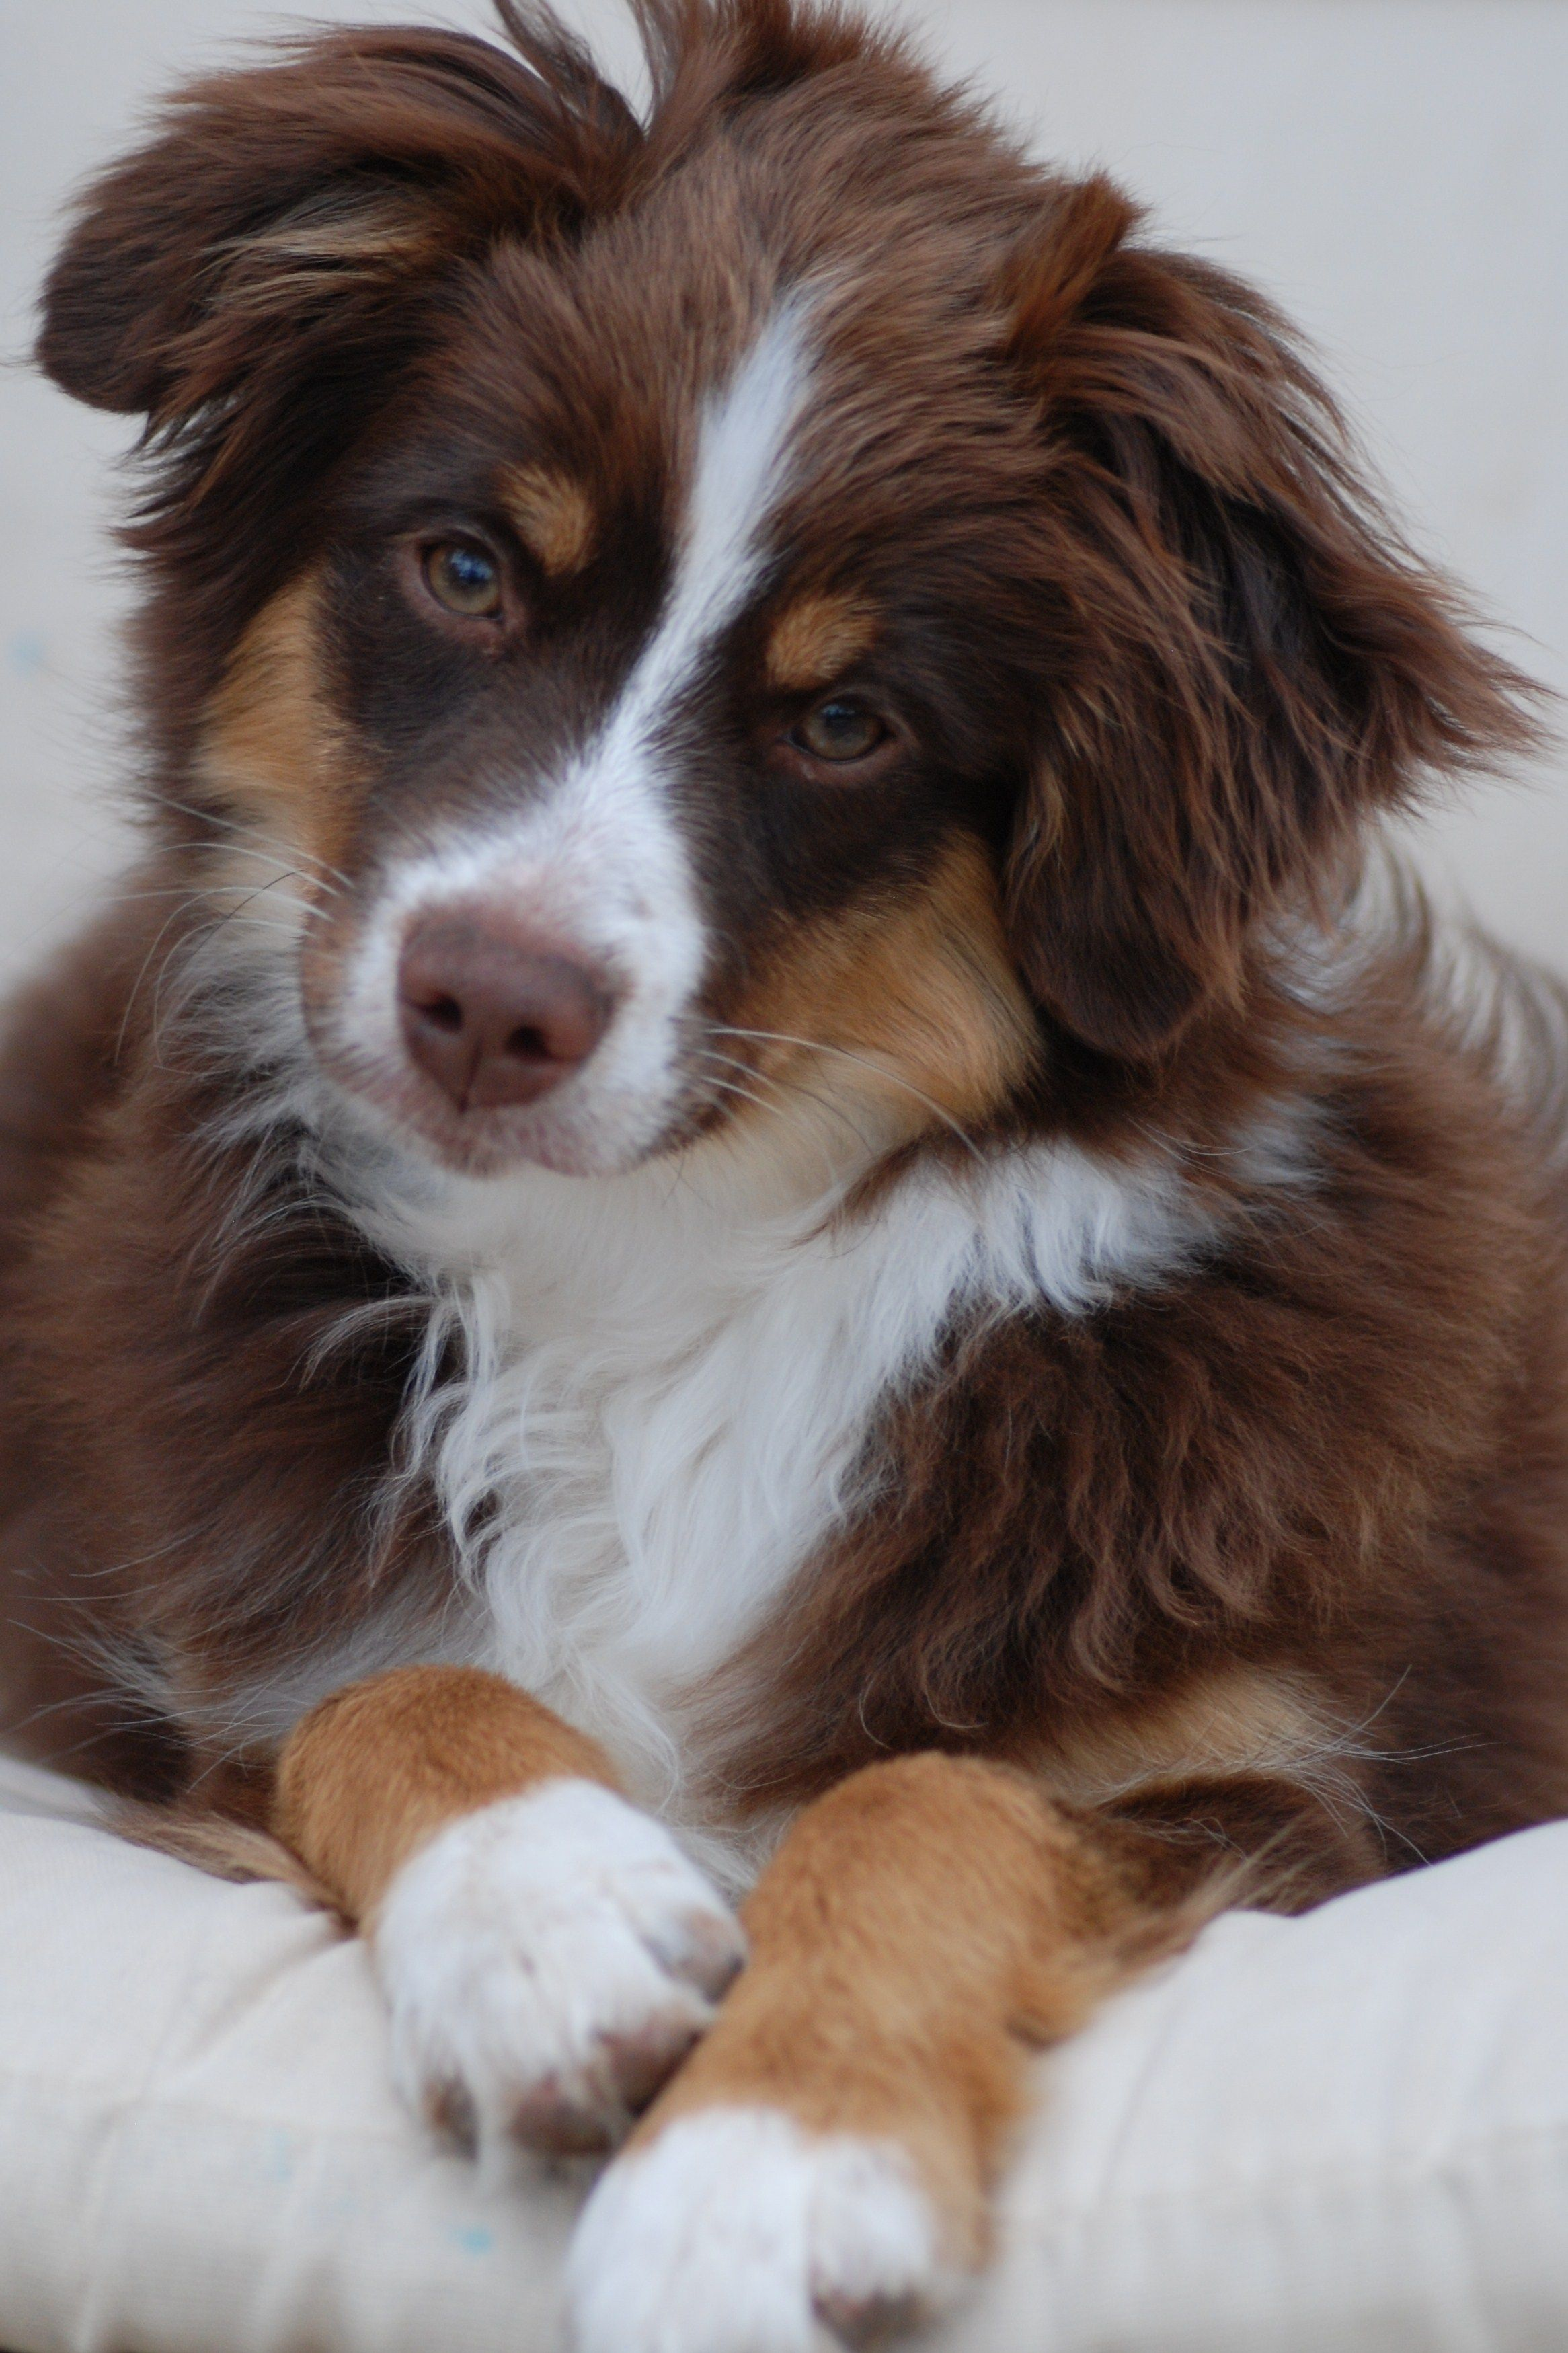 Mini Aussie Red Tri Looks Alot Like My